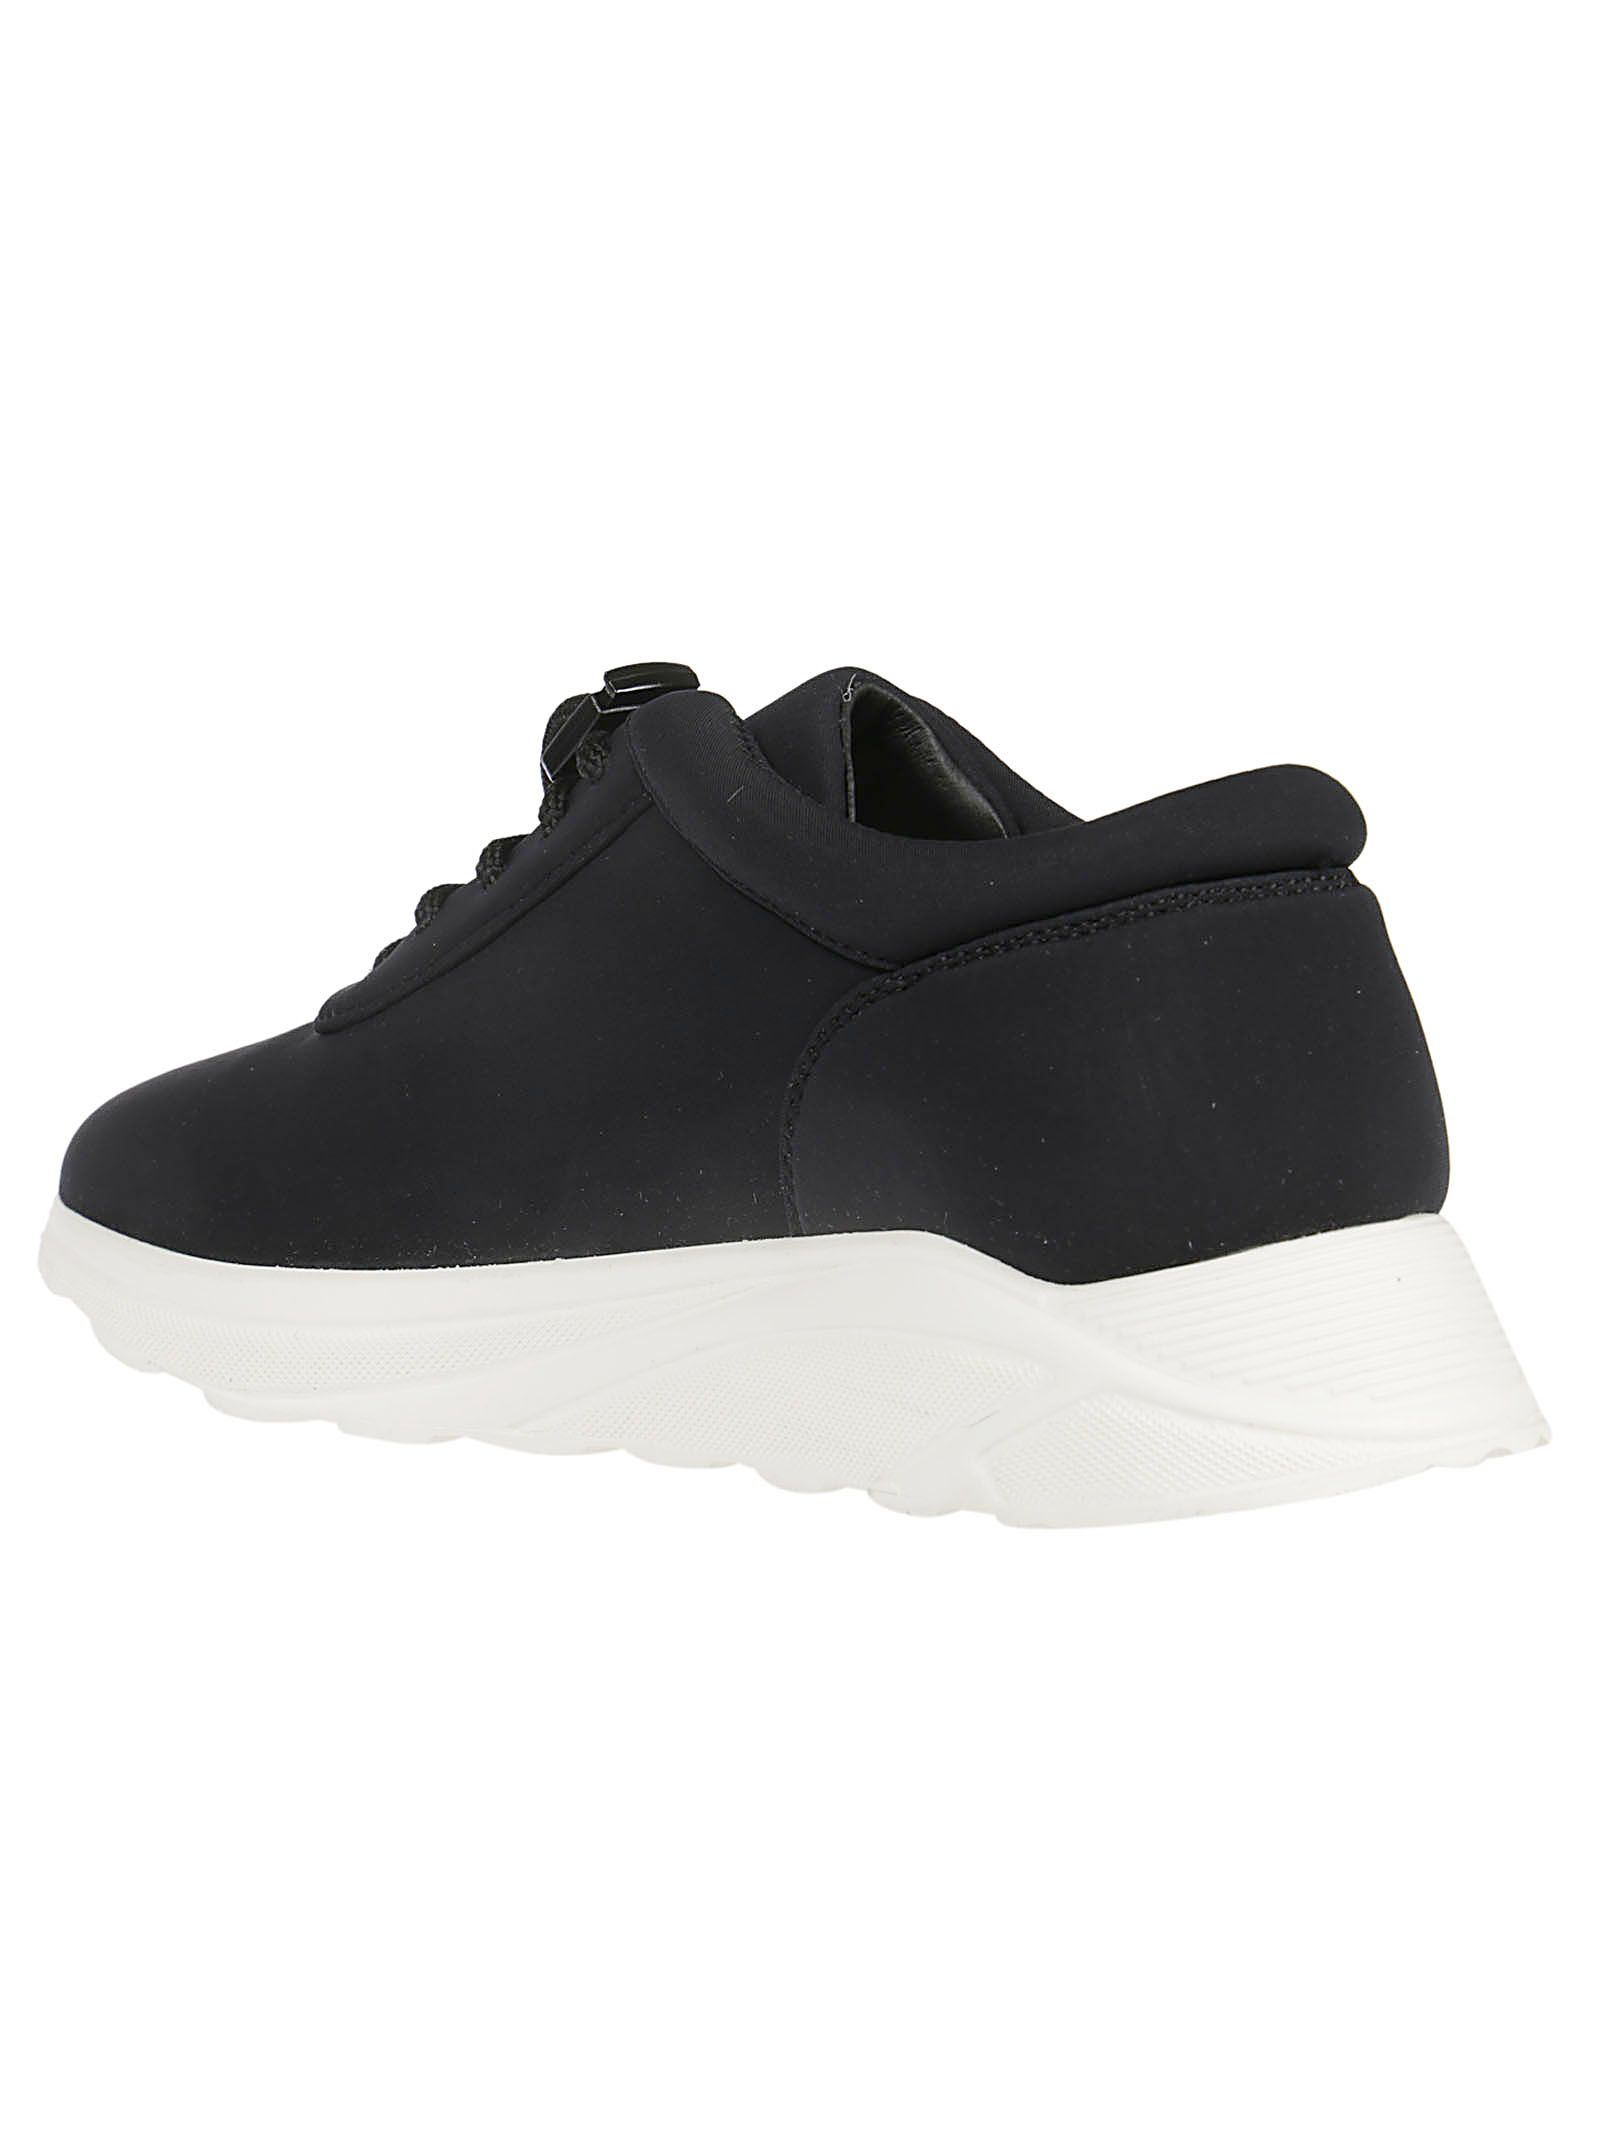 JOSHUA SANDERS Neoprene Swarosky Sneakers Where Can You Find eaxQSYx6